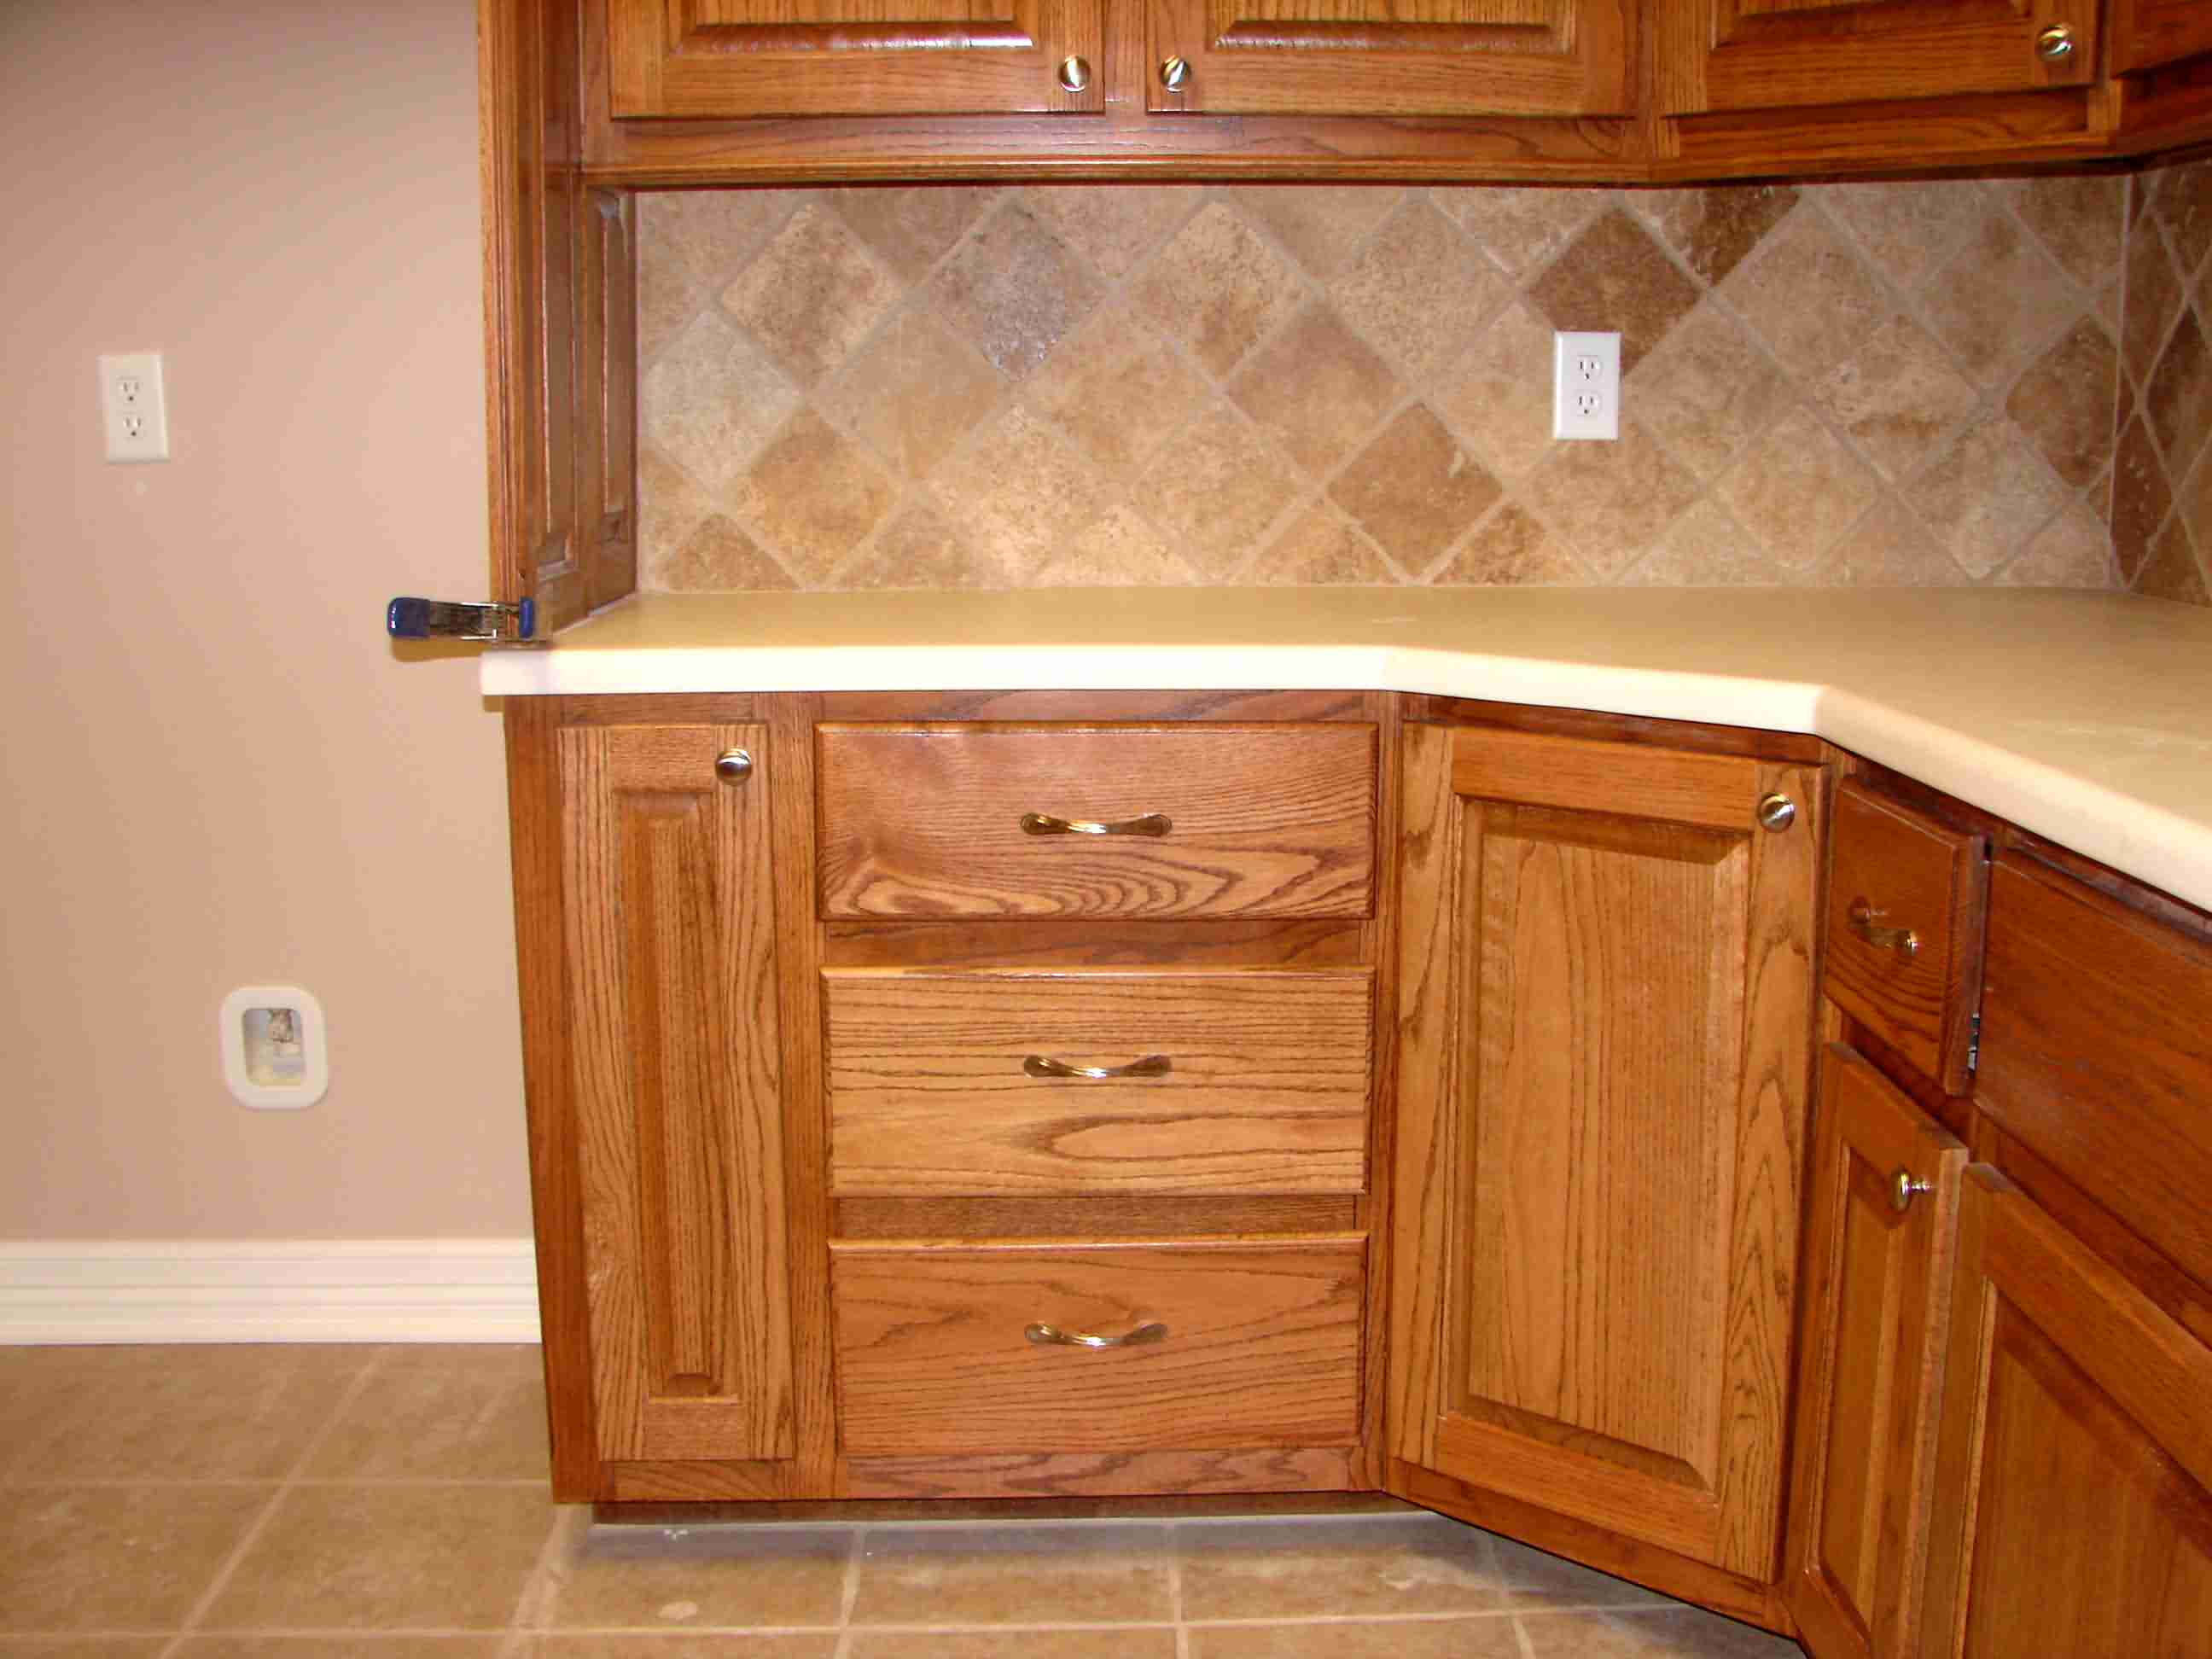 Kitchen corner cabinet wasted space - Click Here For Full Size Image